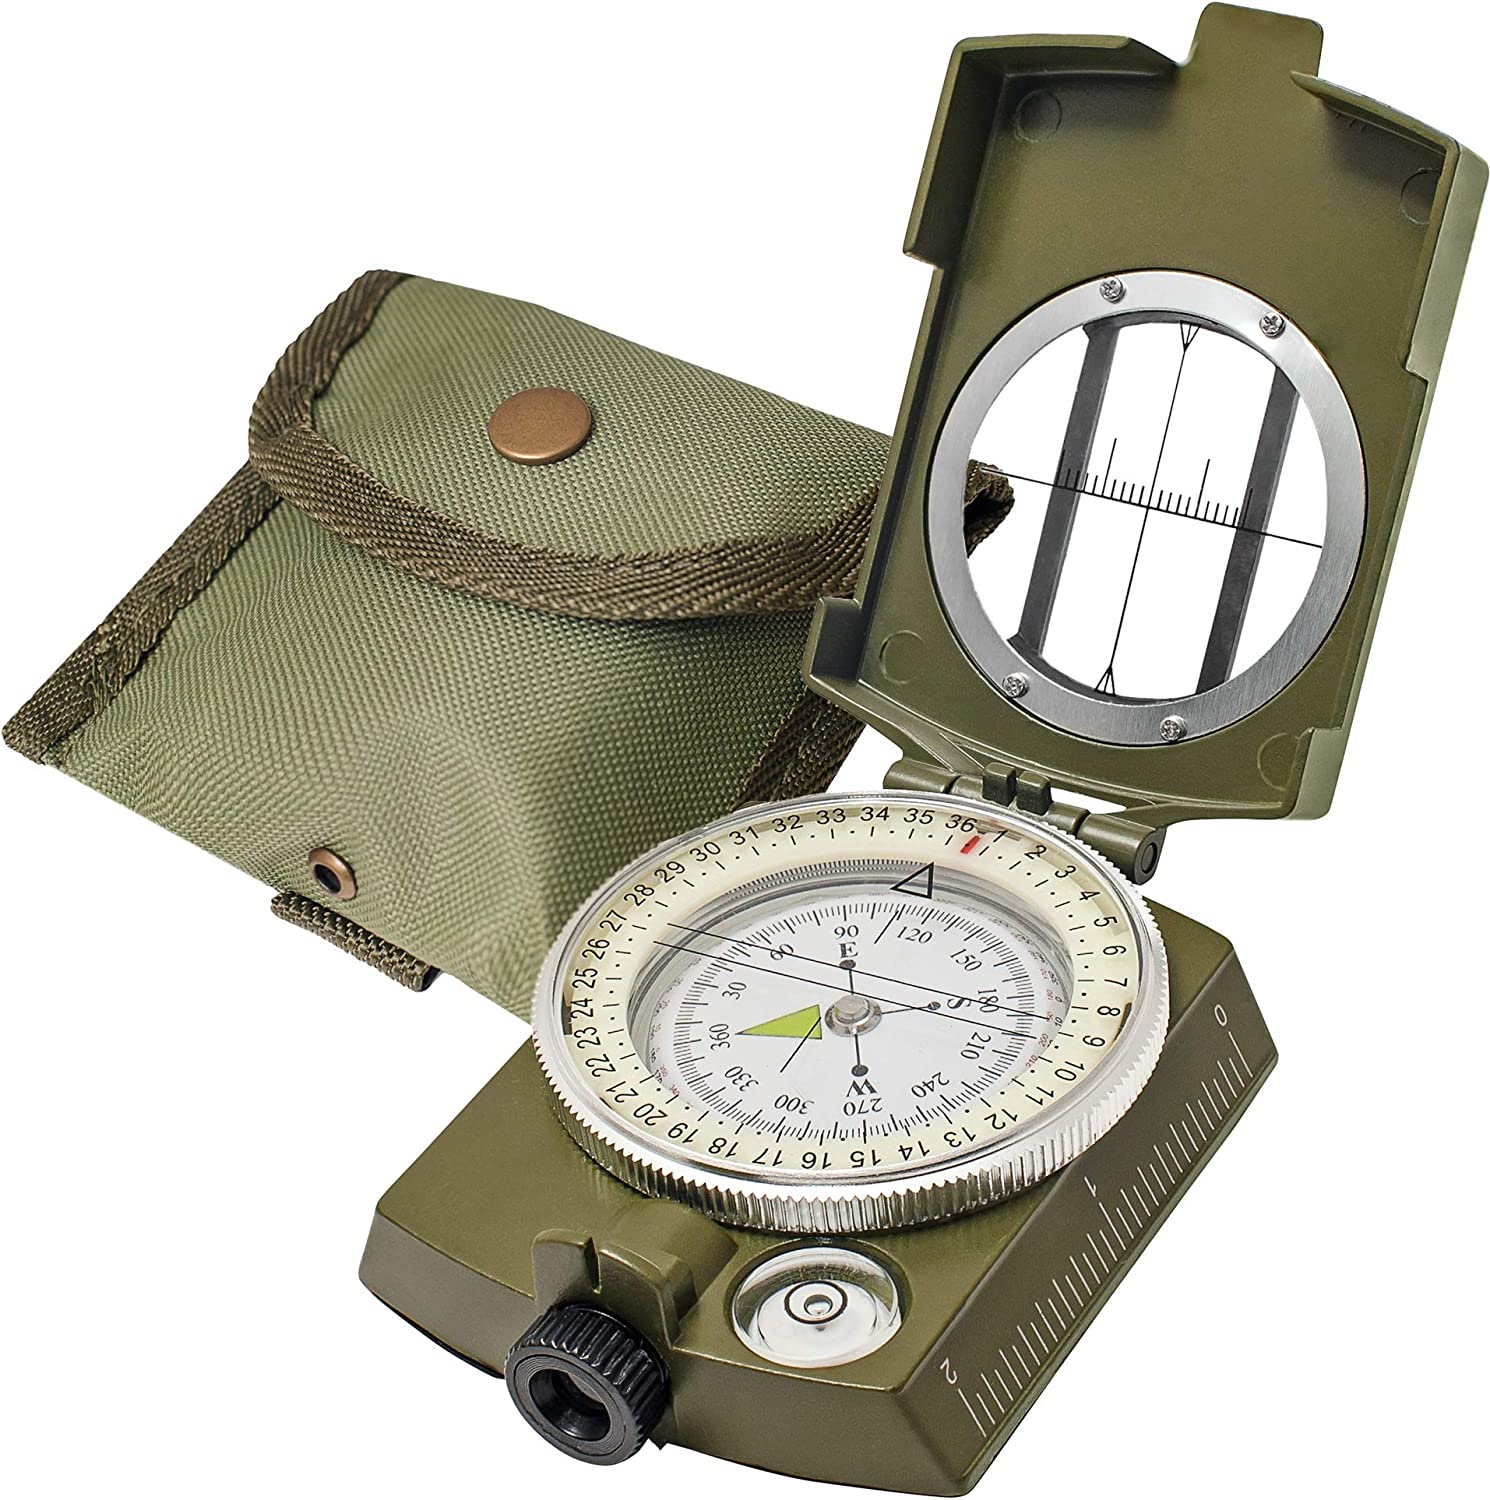 Plast Lensatic Compass Military Camping Hiking Style Survival Marchi SG